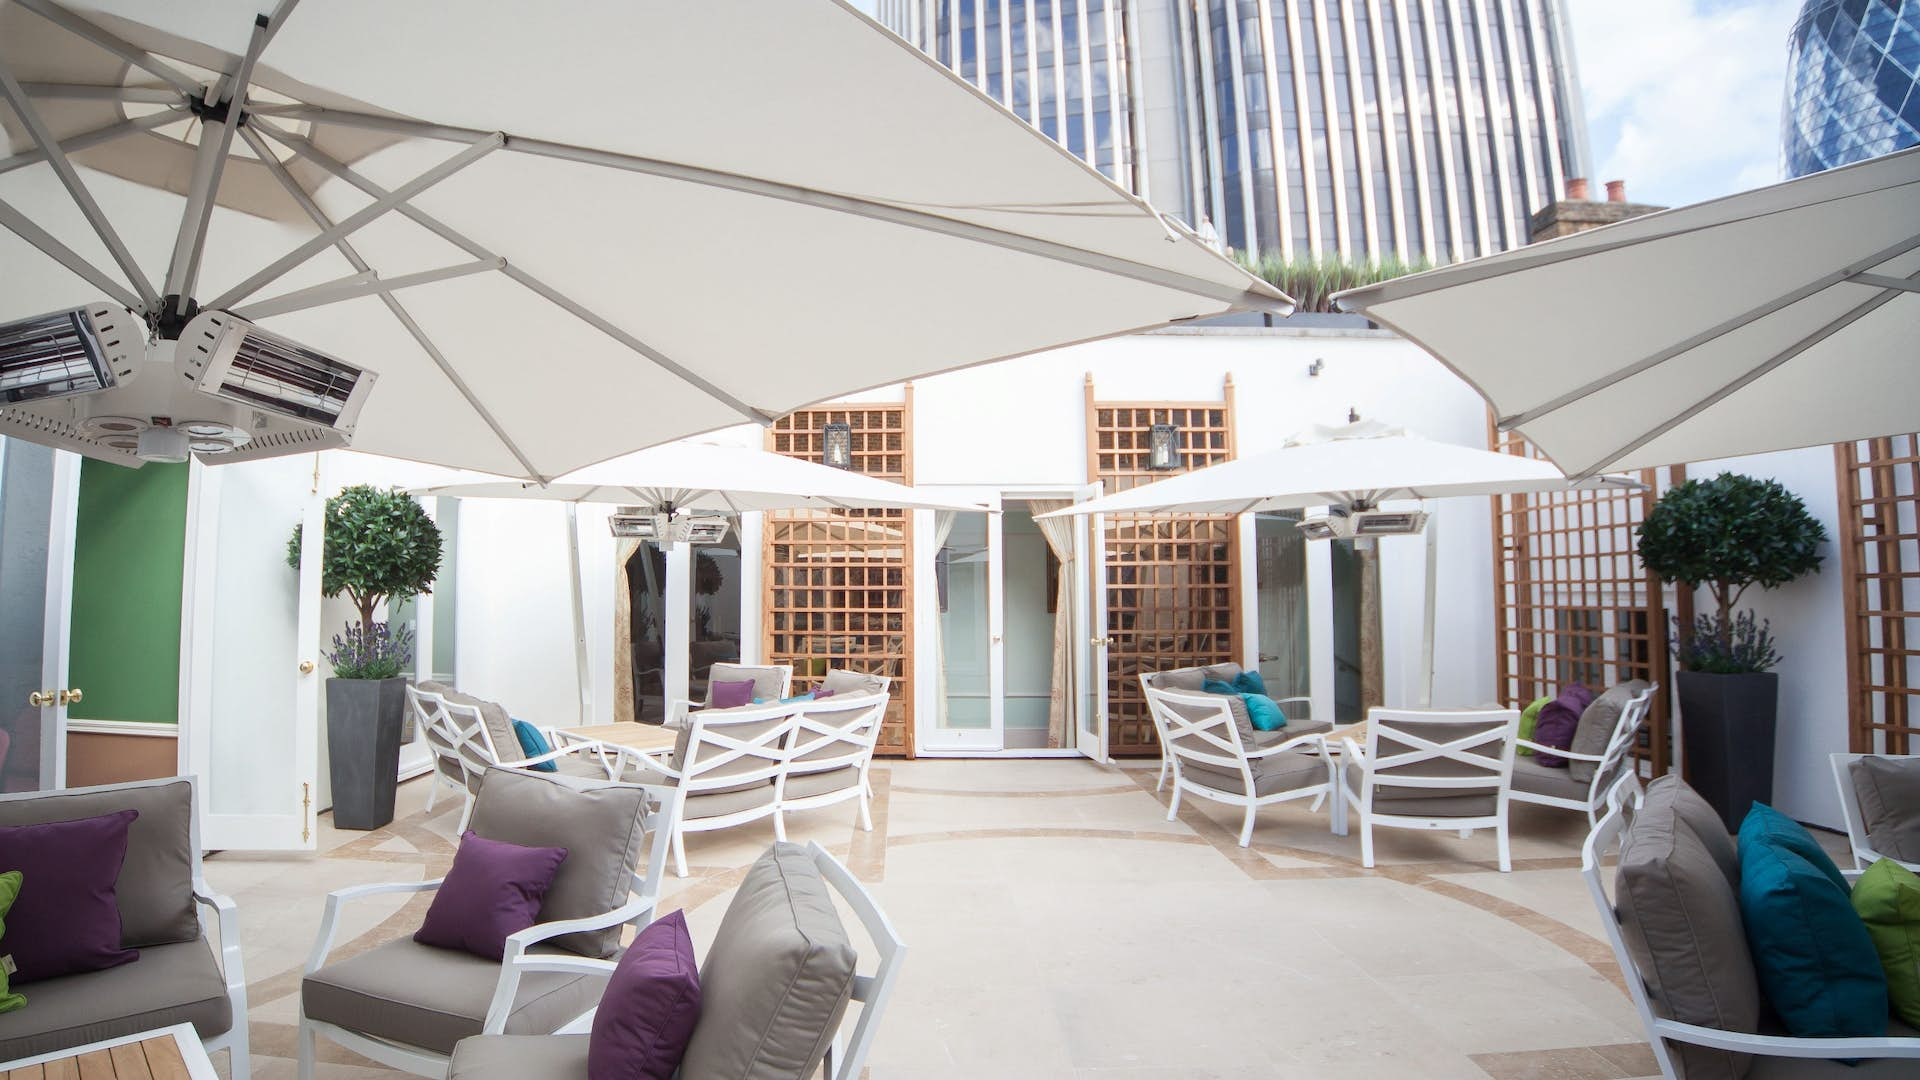 Garden room events hire city of london club for Garden pool hire london